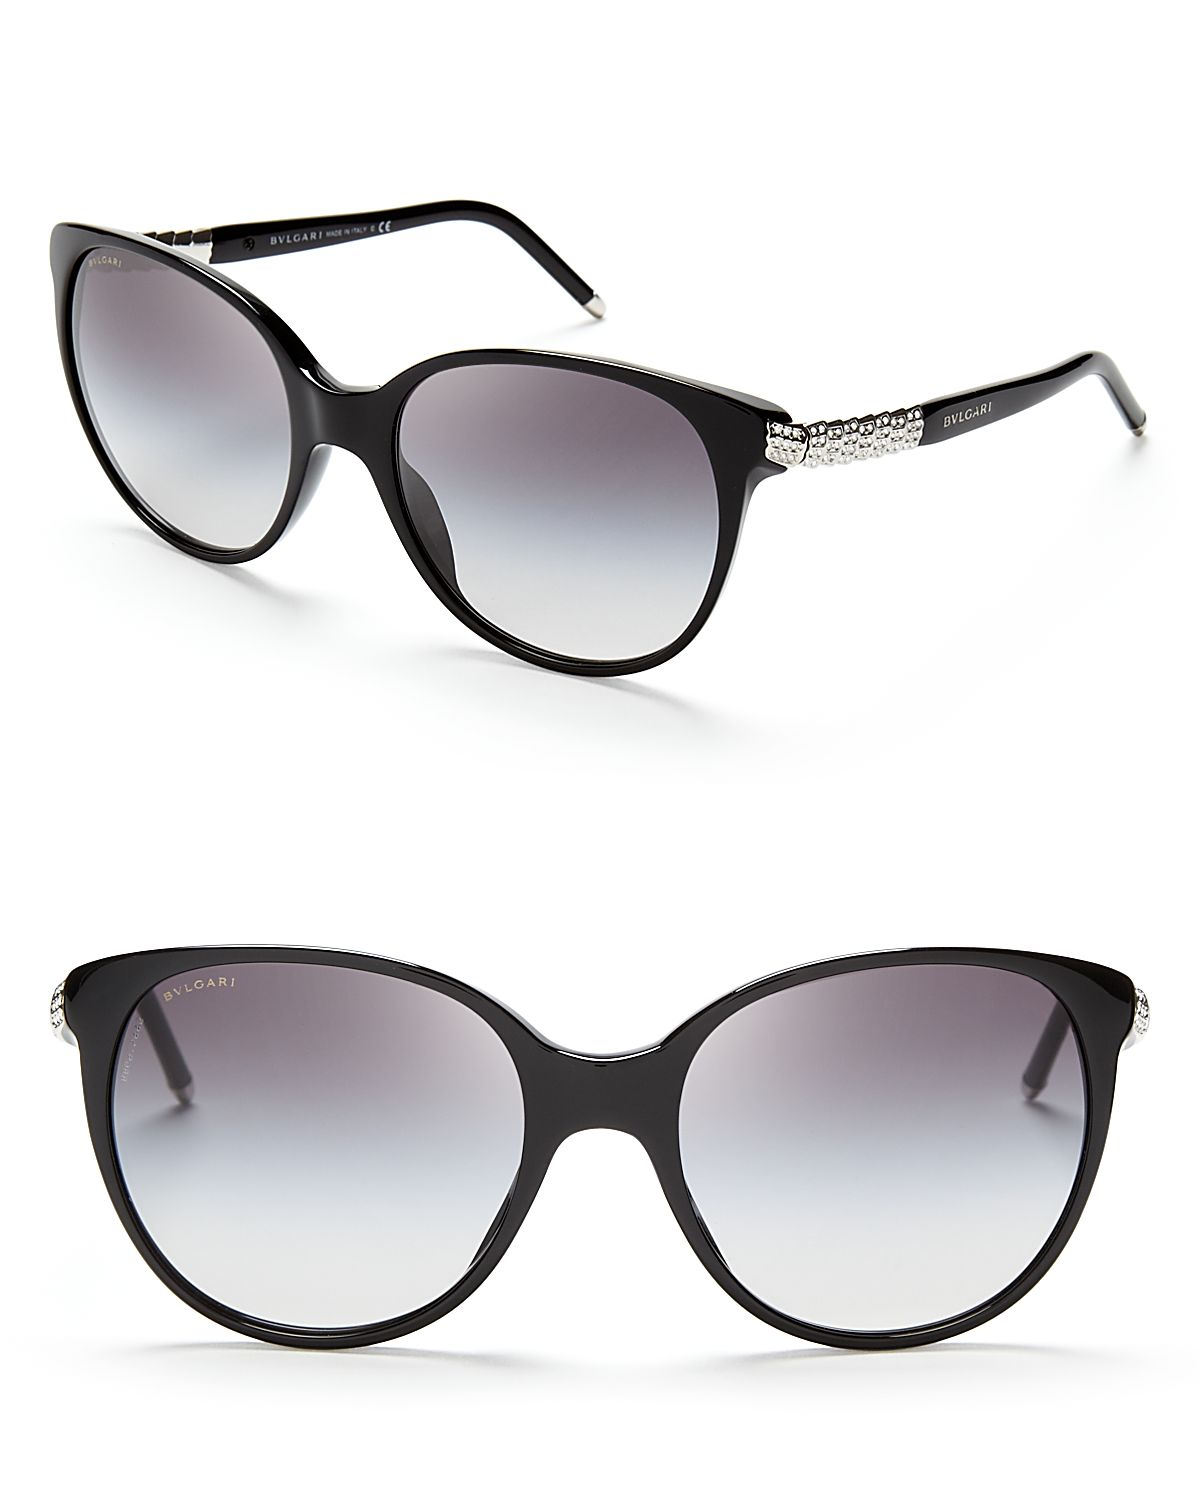 be65077557c5 bvlgari-black-serpent-crystal-temple-cat-eye-sunglasses-product-1-10874988-467782176.jpeg